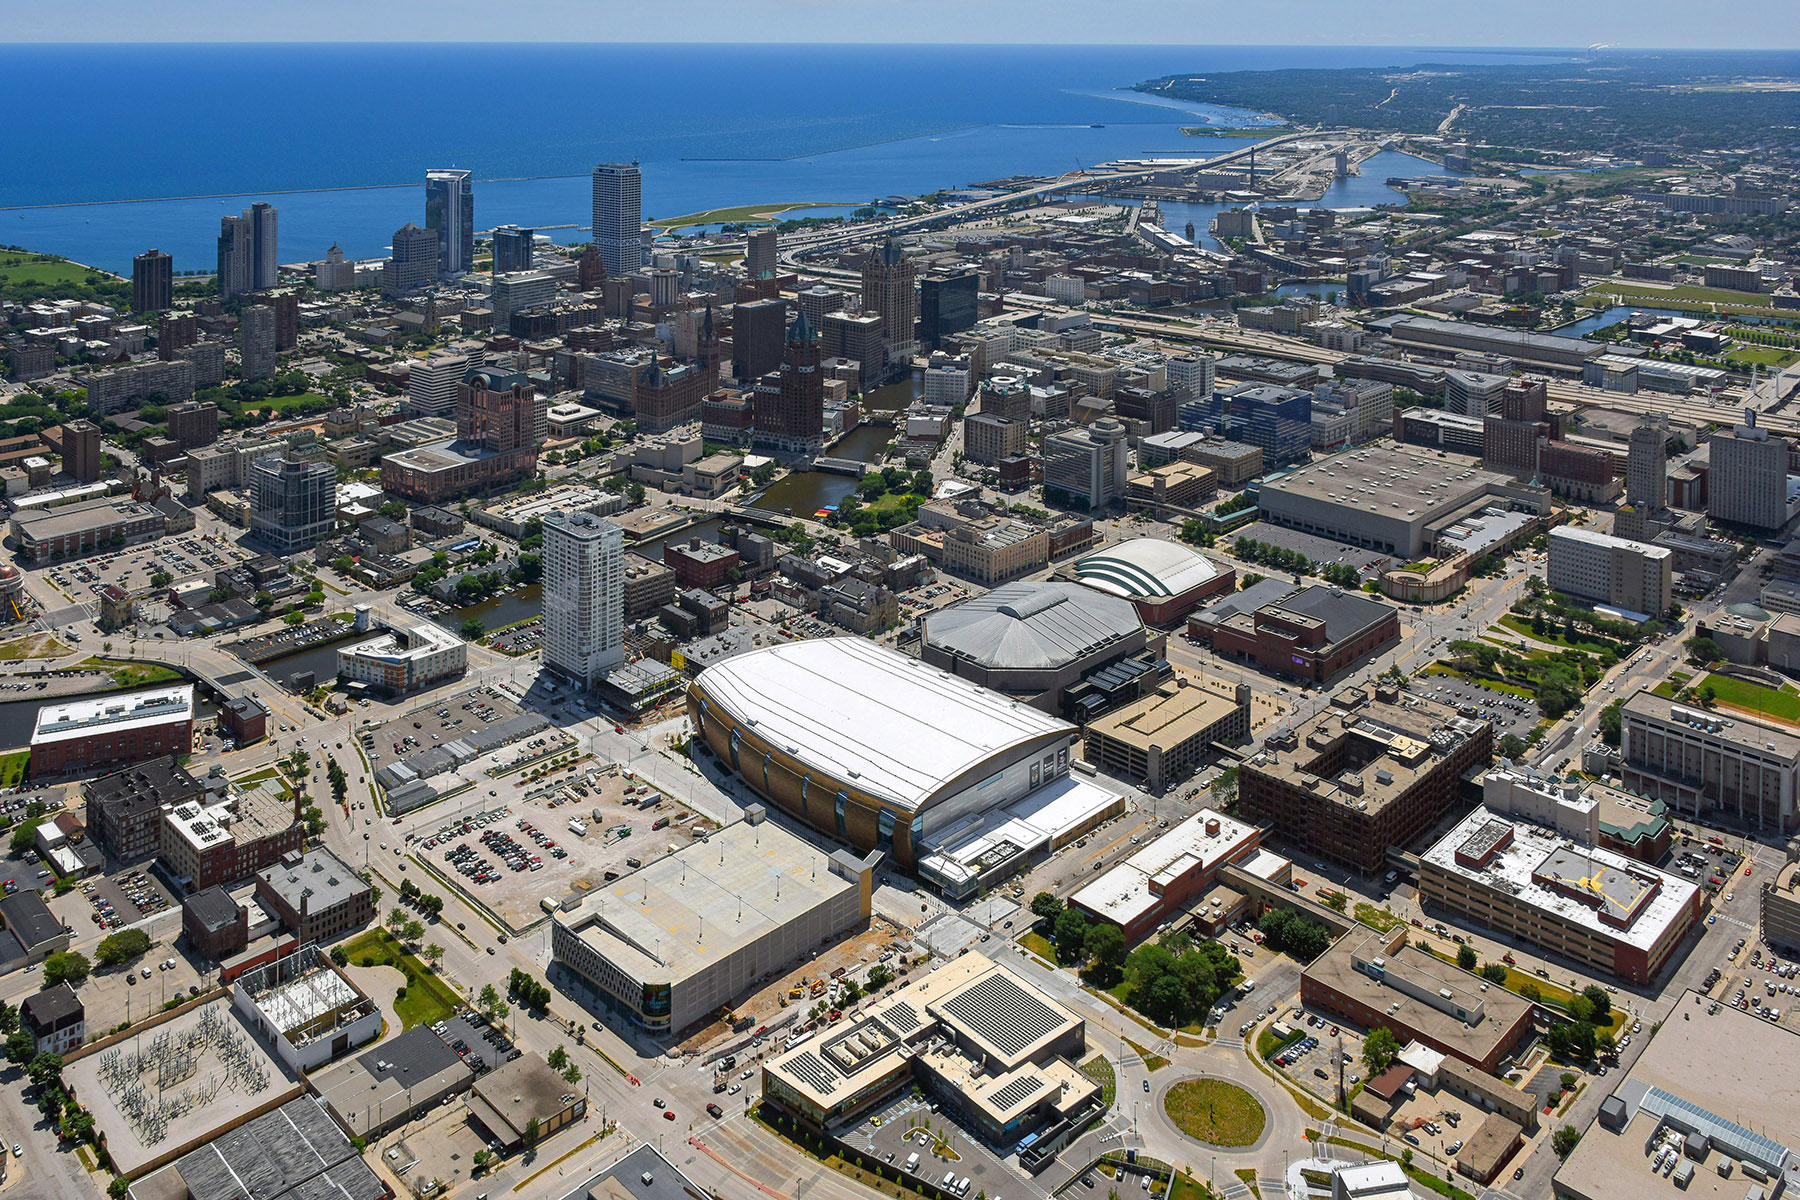 Sale Of Naming Rights For Bucks Arena Gives Basketball Fans Quarter